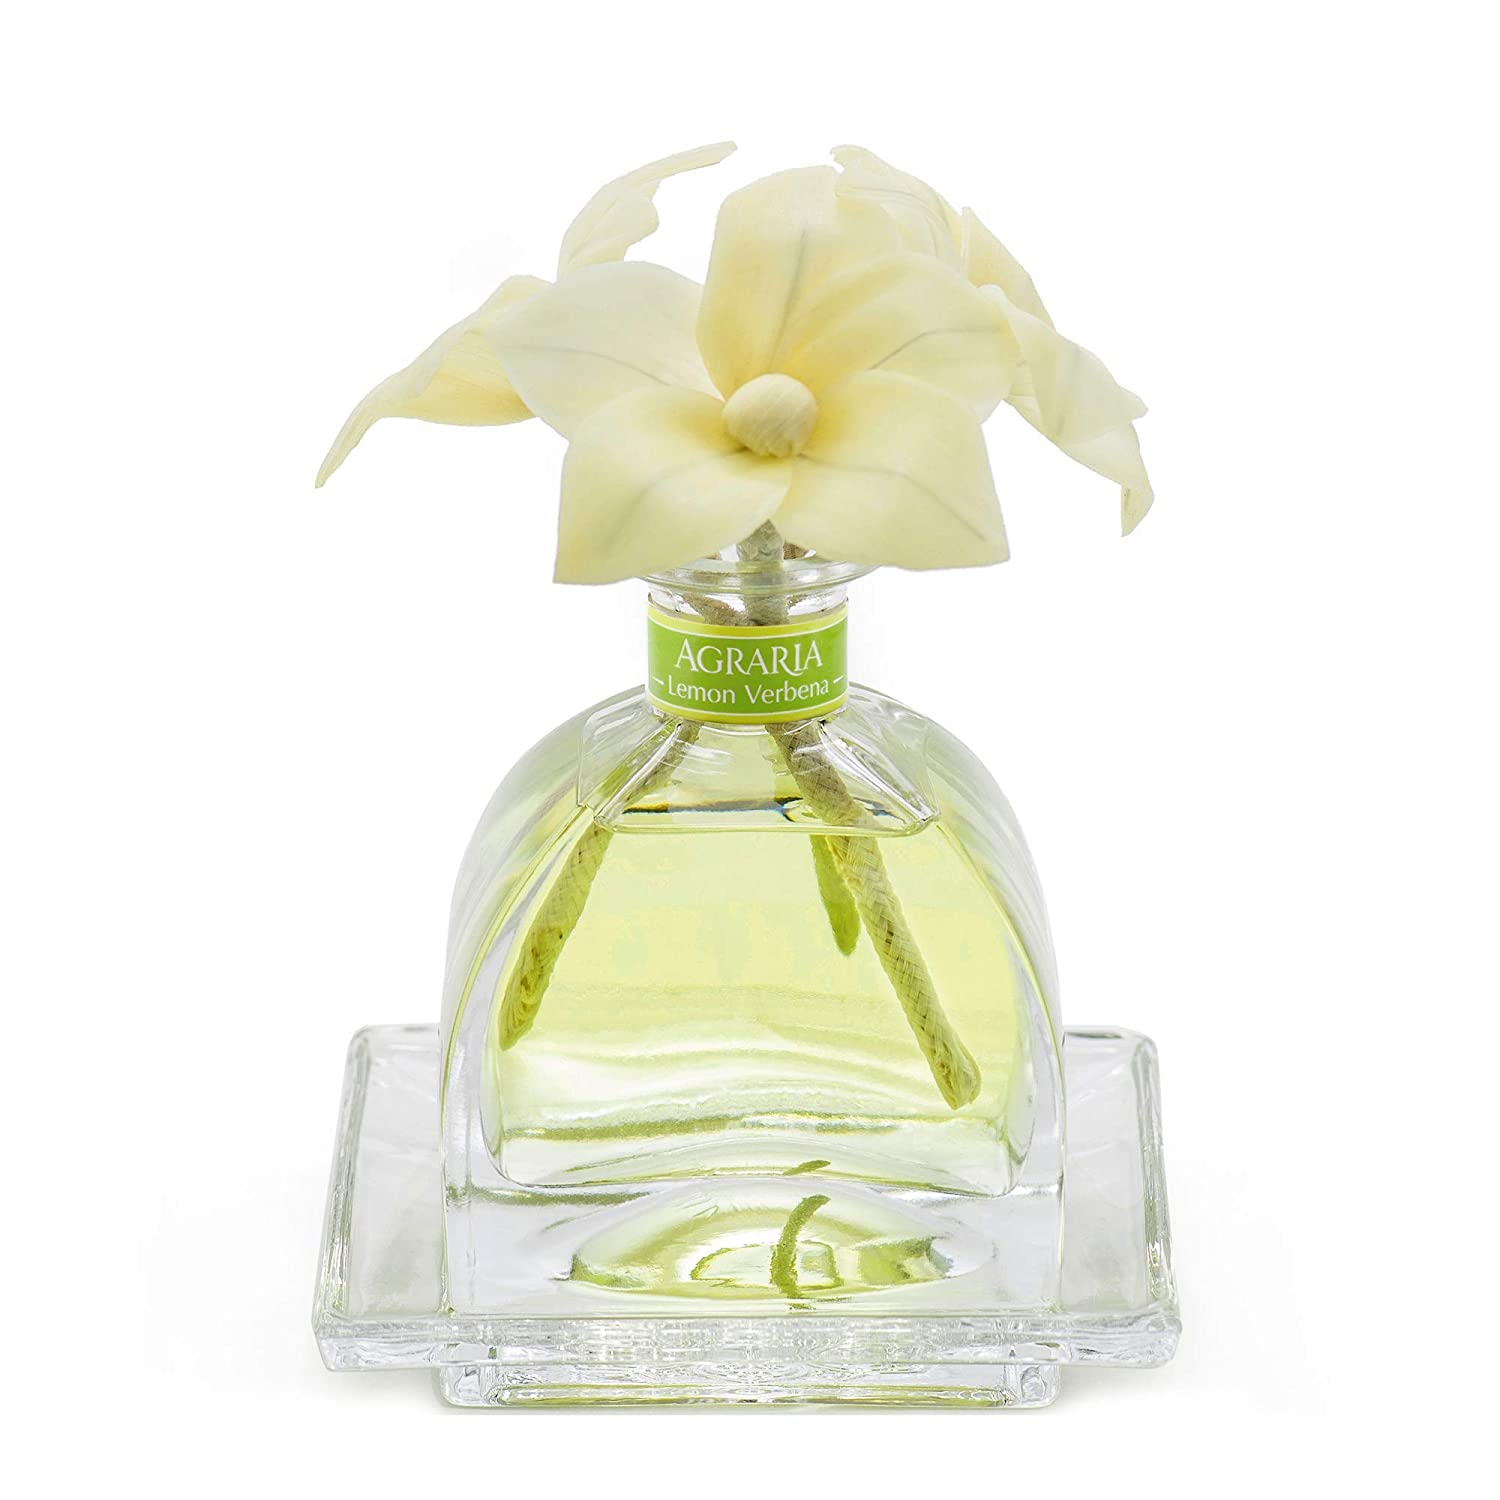 AGRARIA AirEssence Luxury Diffuser Lemon Verbena Scent, Includes 3 Sola Flowers and 20 Reeds 7.4 Ounces